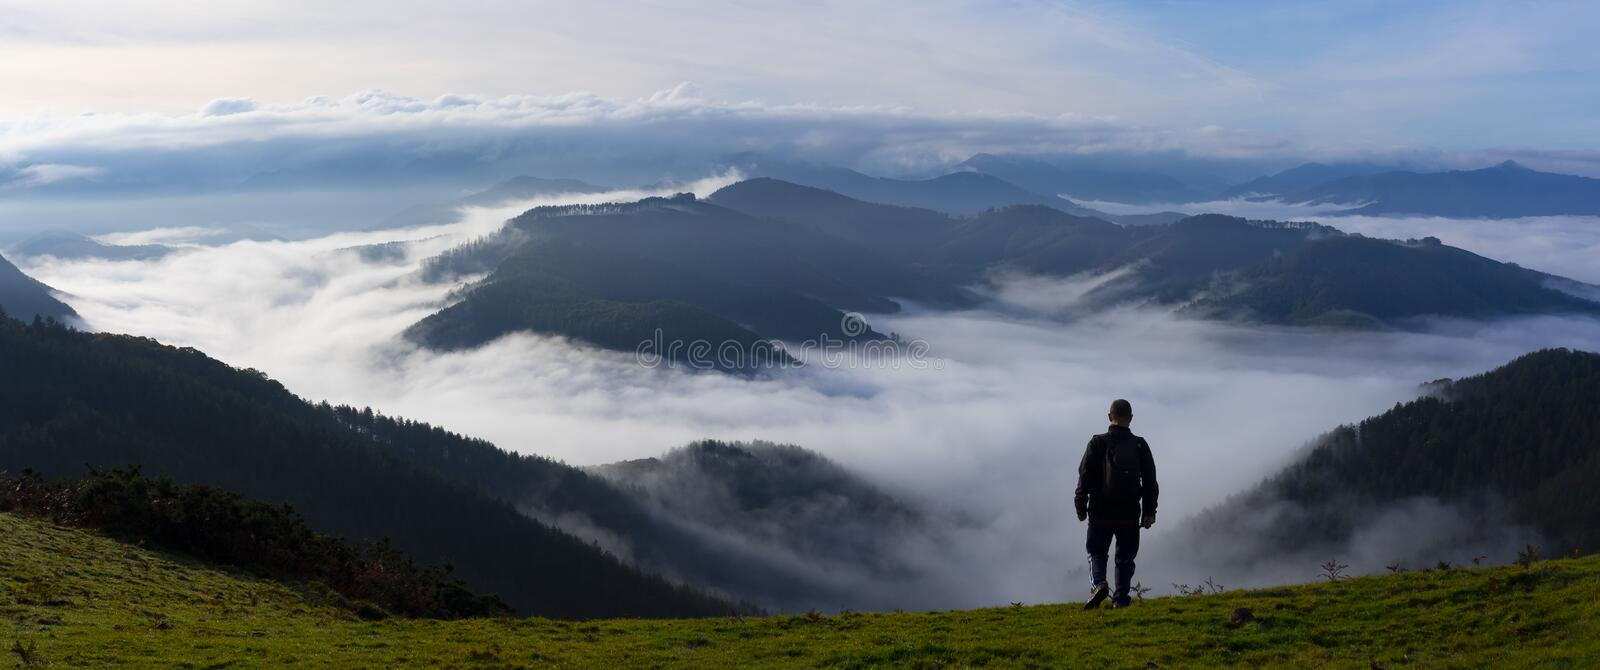 Man hiking on background of misty autumn mountains royalty free stock photos